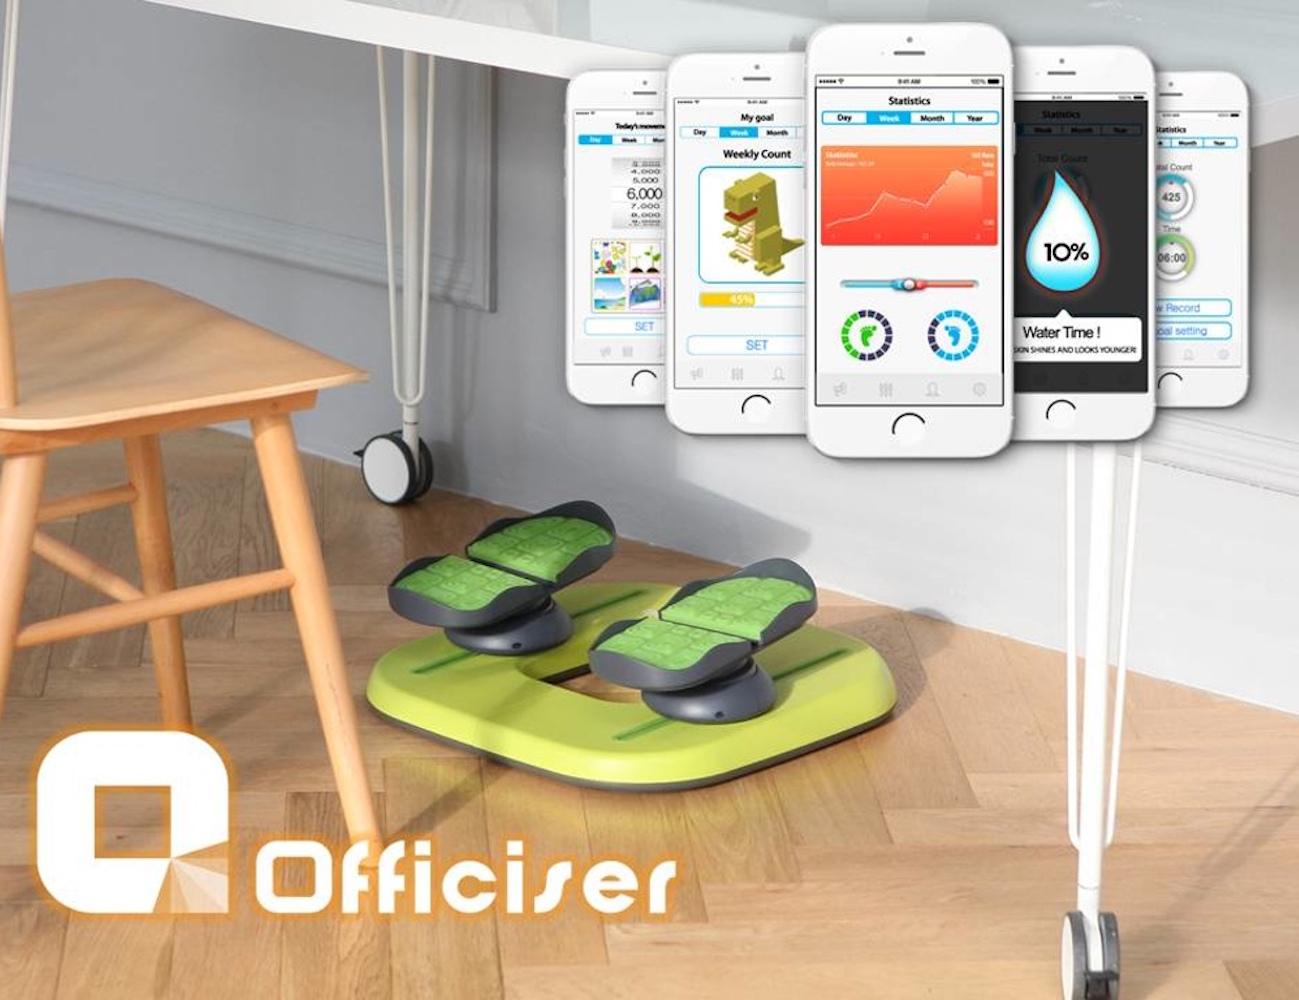 officiser-office-health-management-device-03